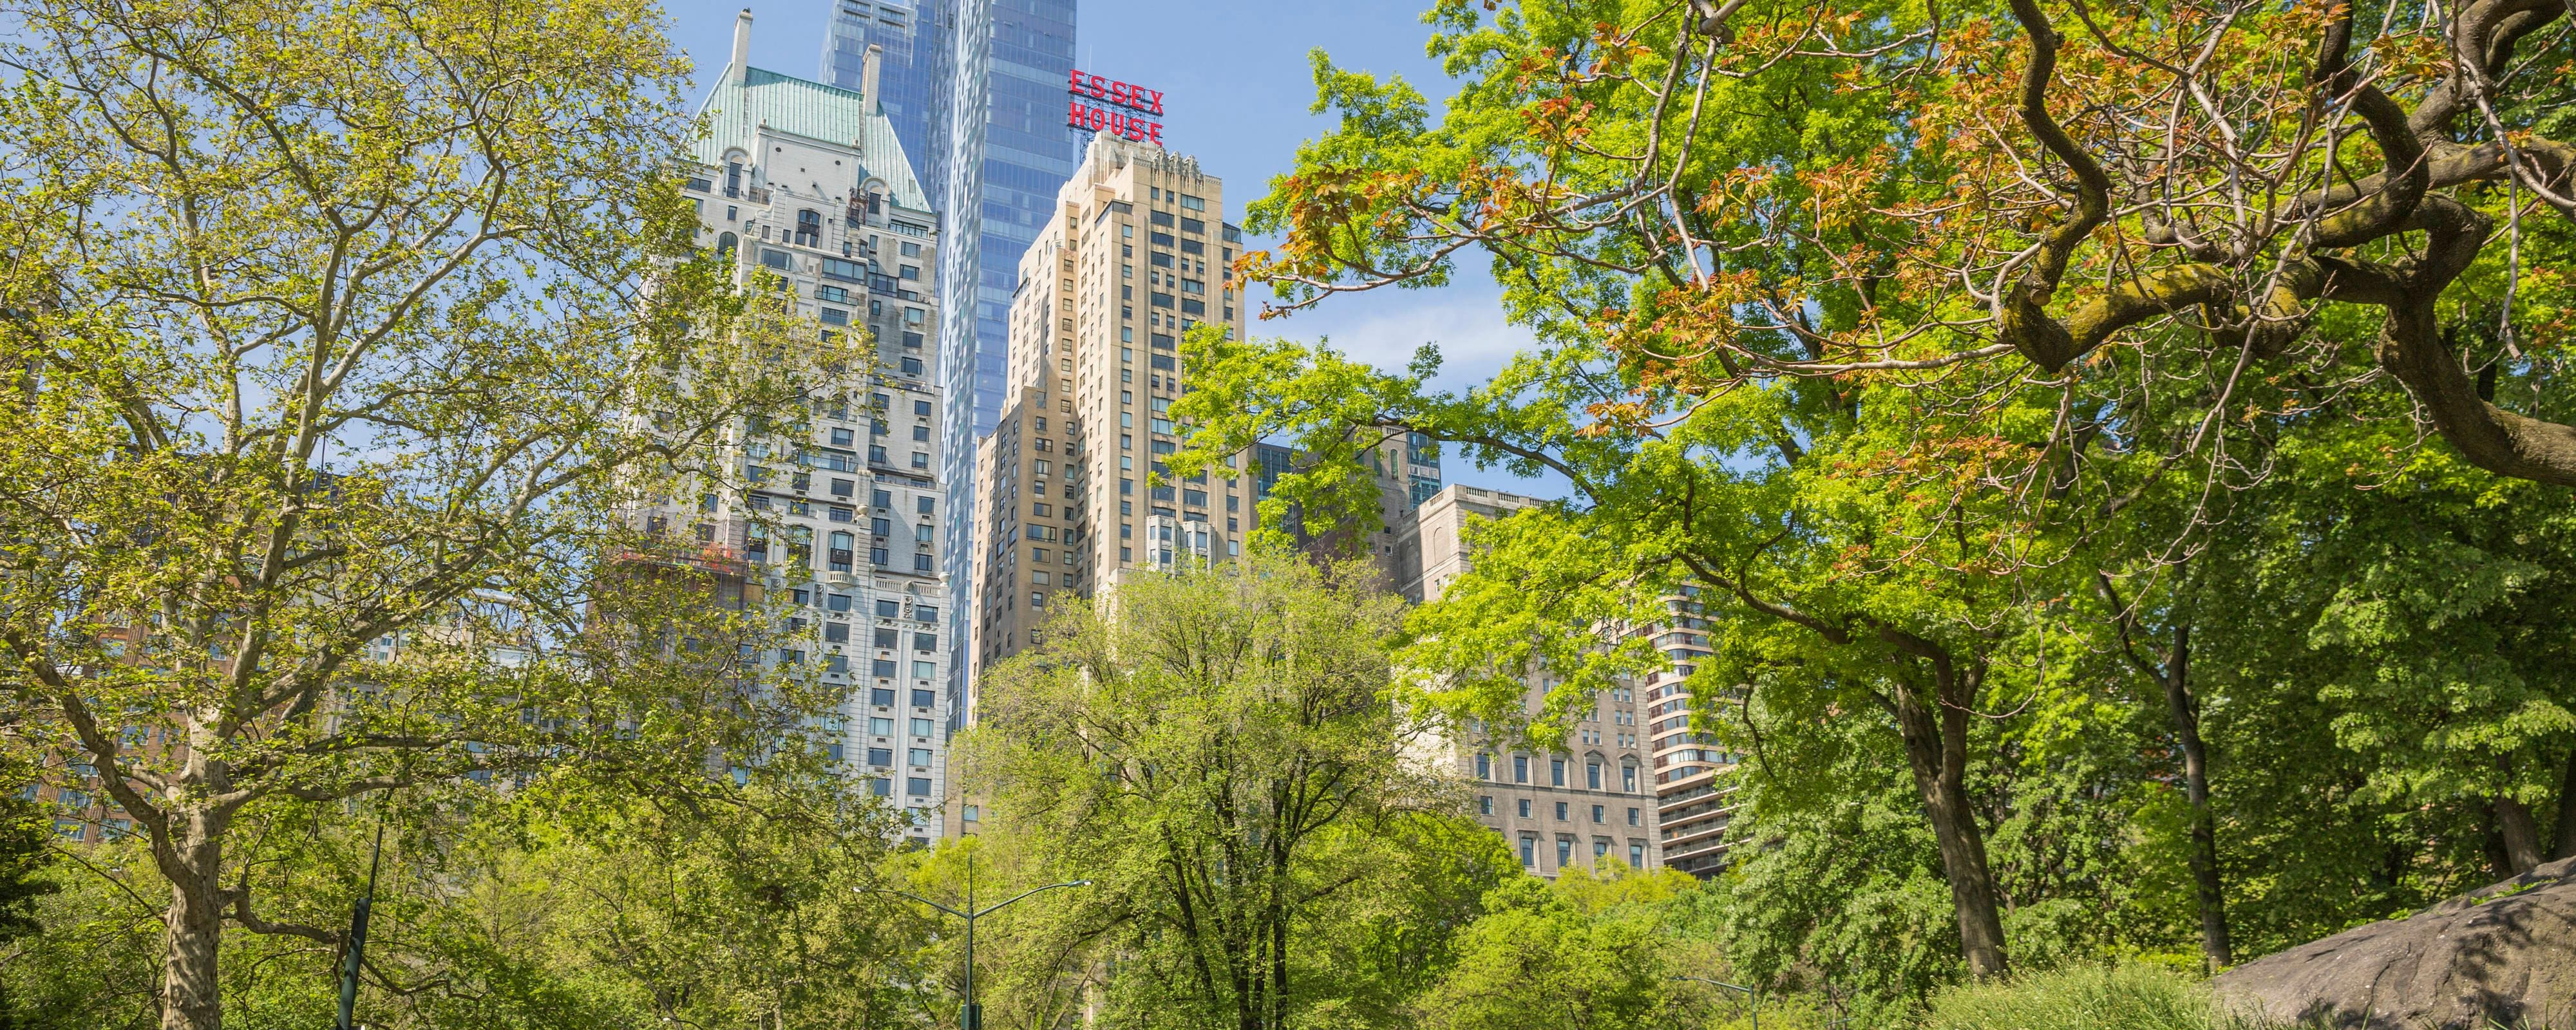 Central Park South Hotel NYC | JW Marriott Essex House New York